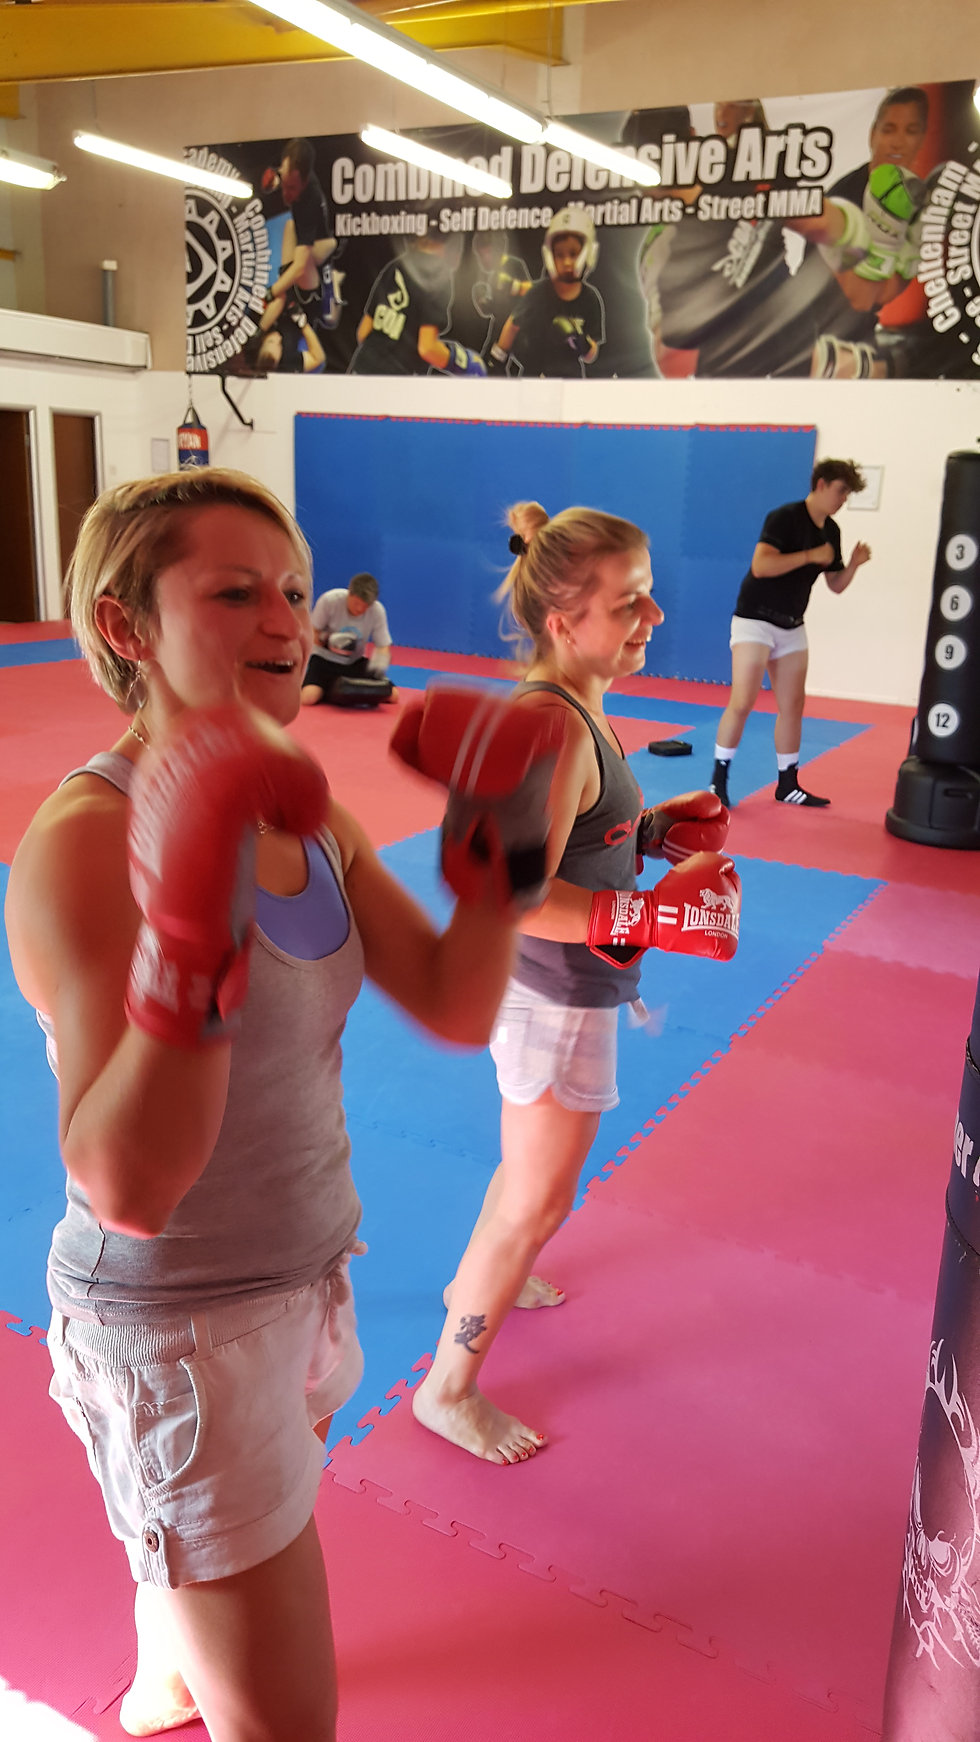 Two ladies having fun and working out in a fitness kickboxing class